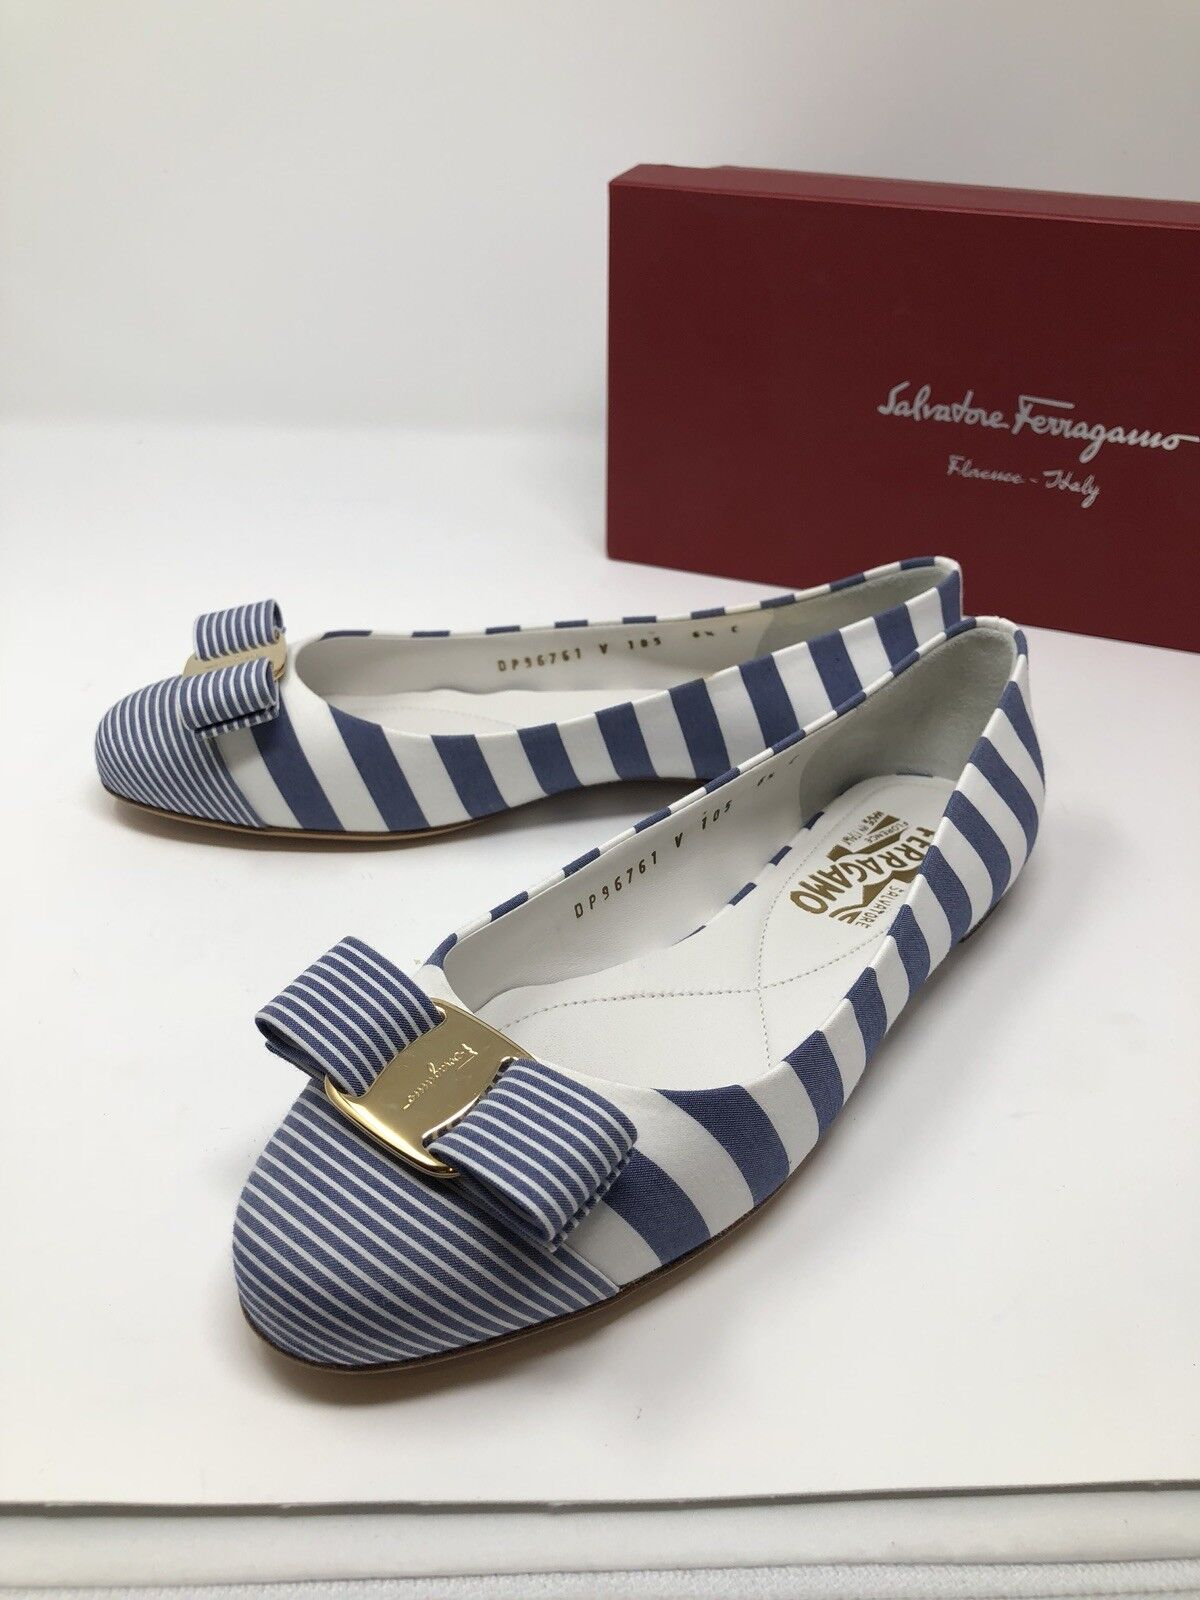 600 New Salvatore Ferragamo Womens bluee White Ladies shoes Size 6.5 C US